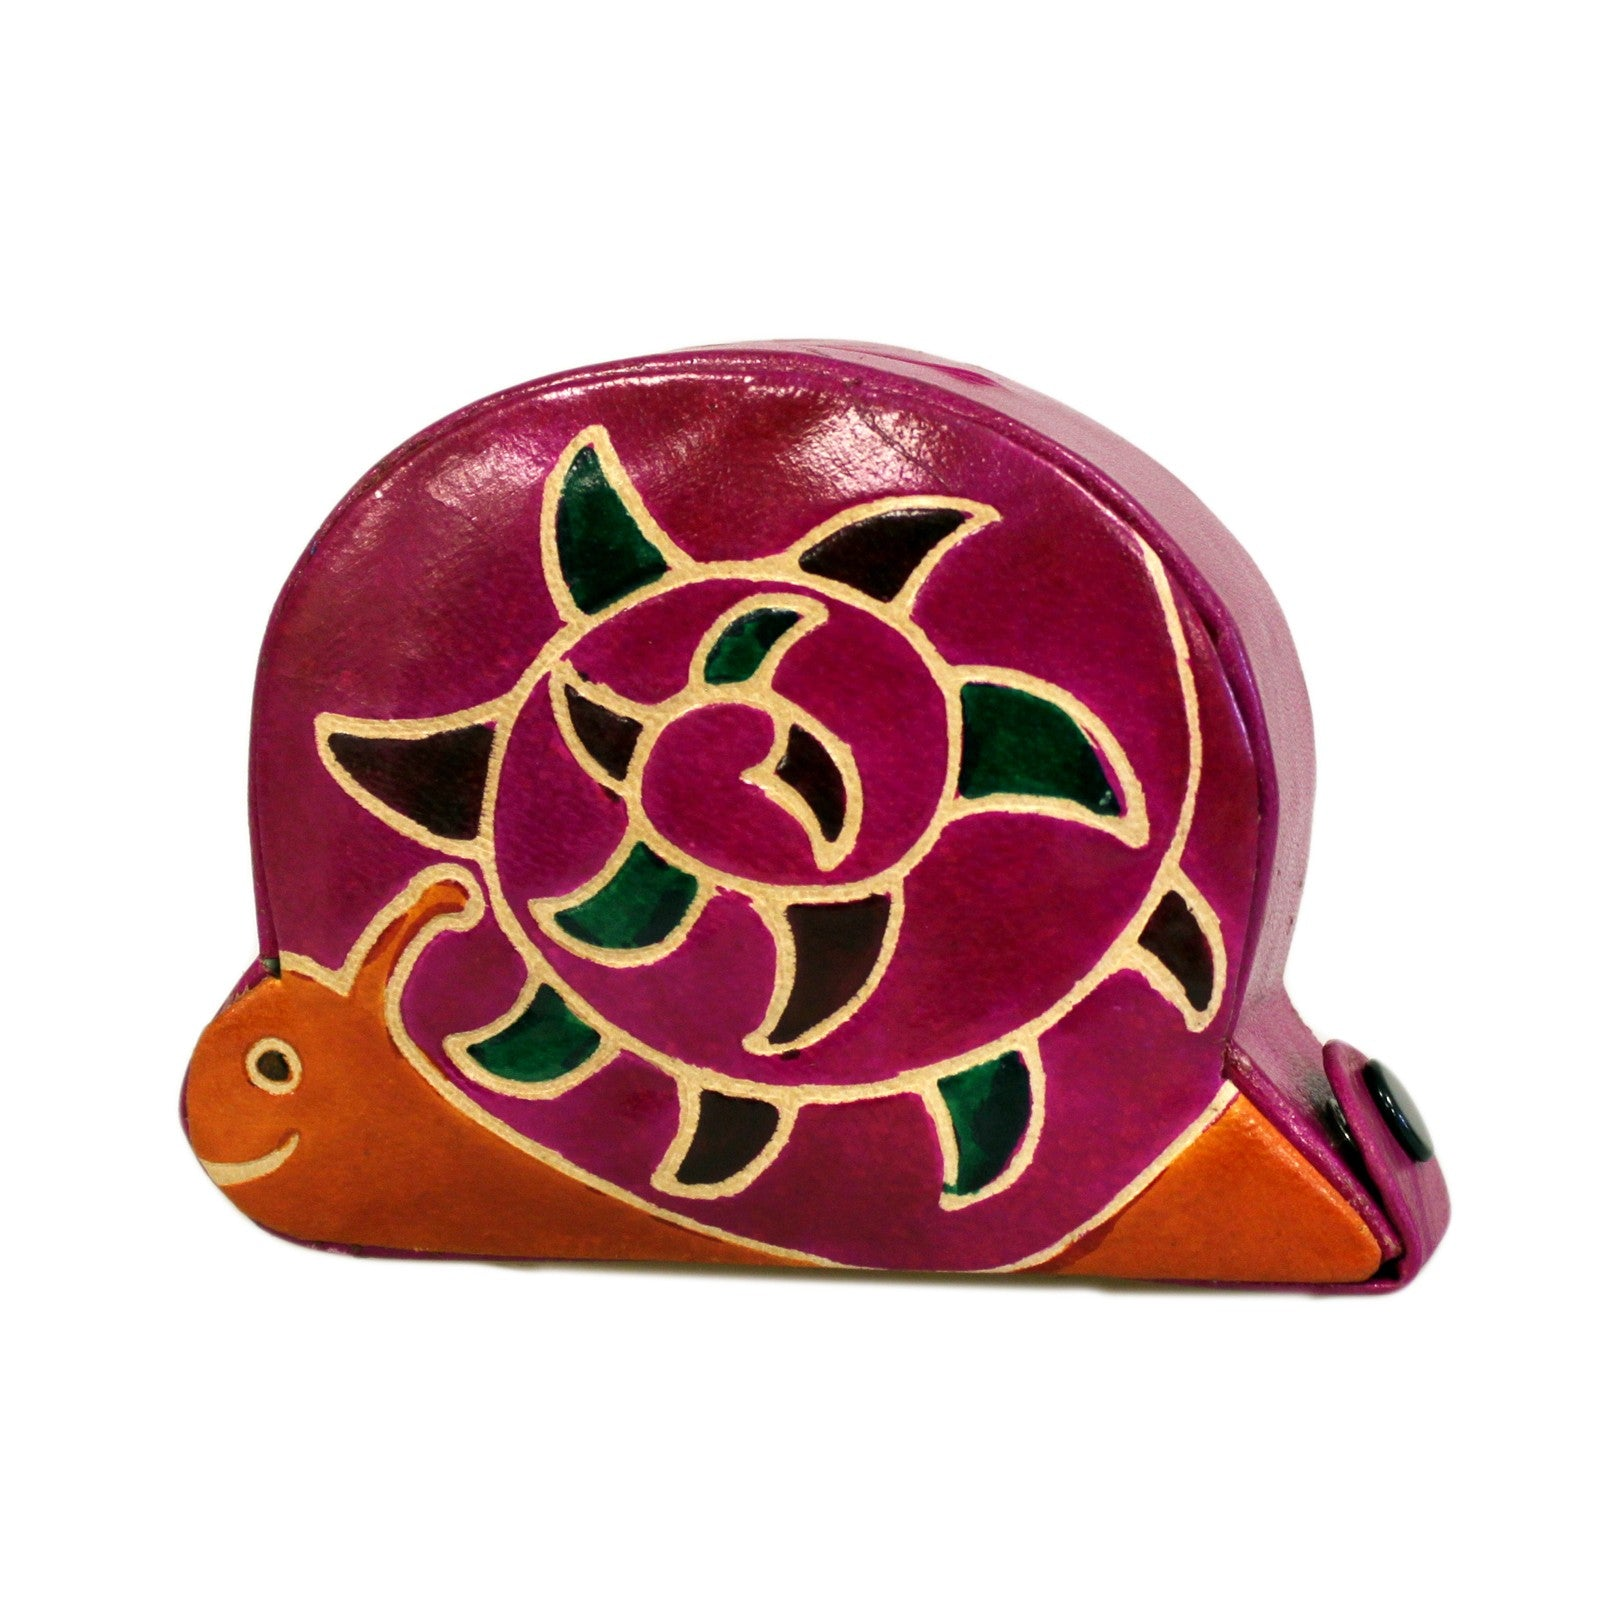 snail money box-made from recycled leather-ecofriendly-from-legacygifts.co.uk